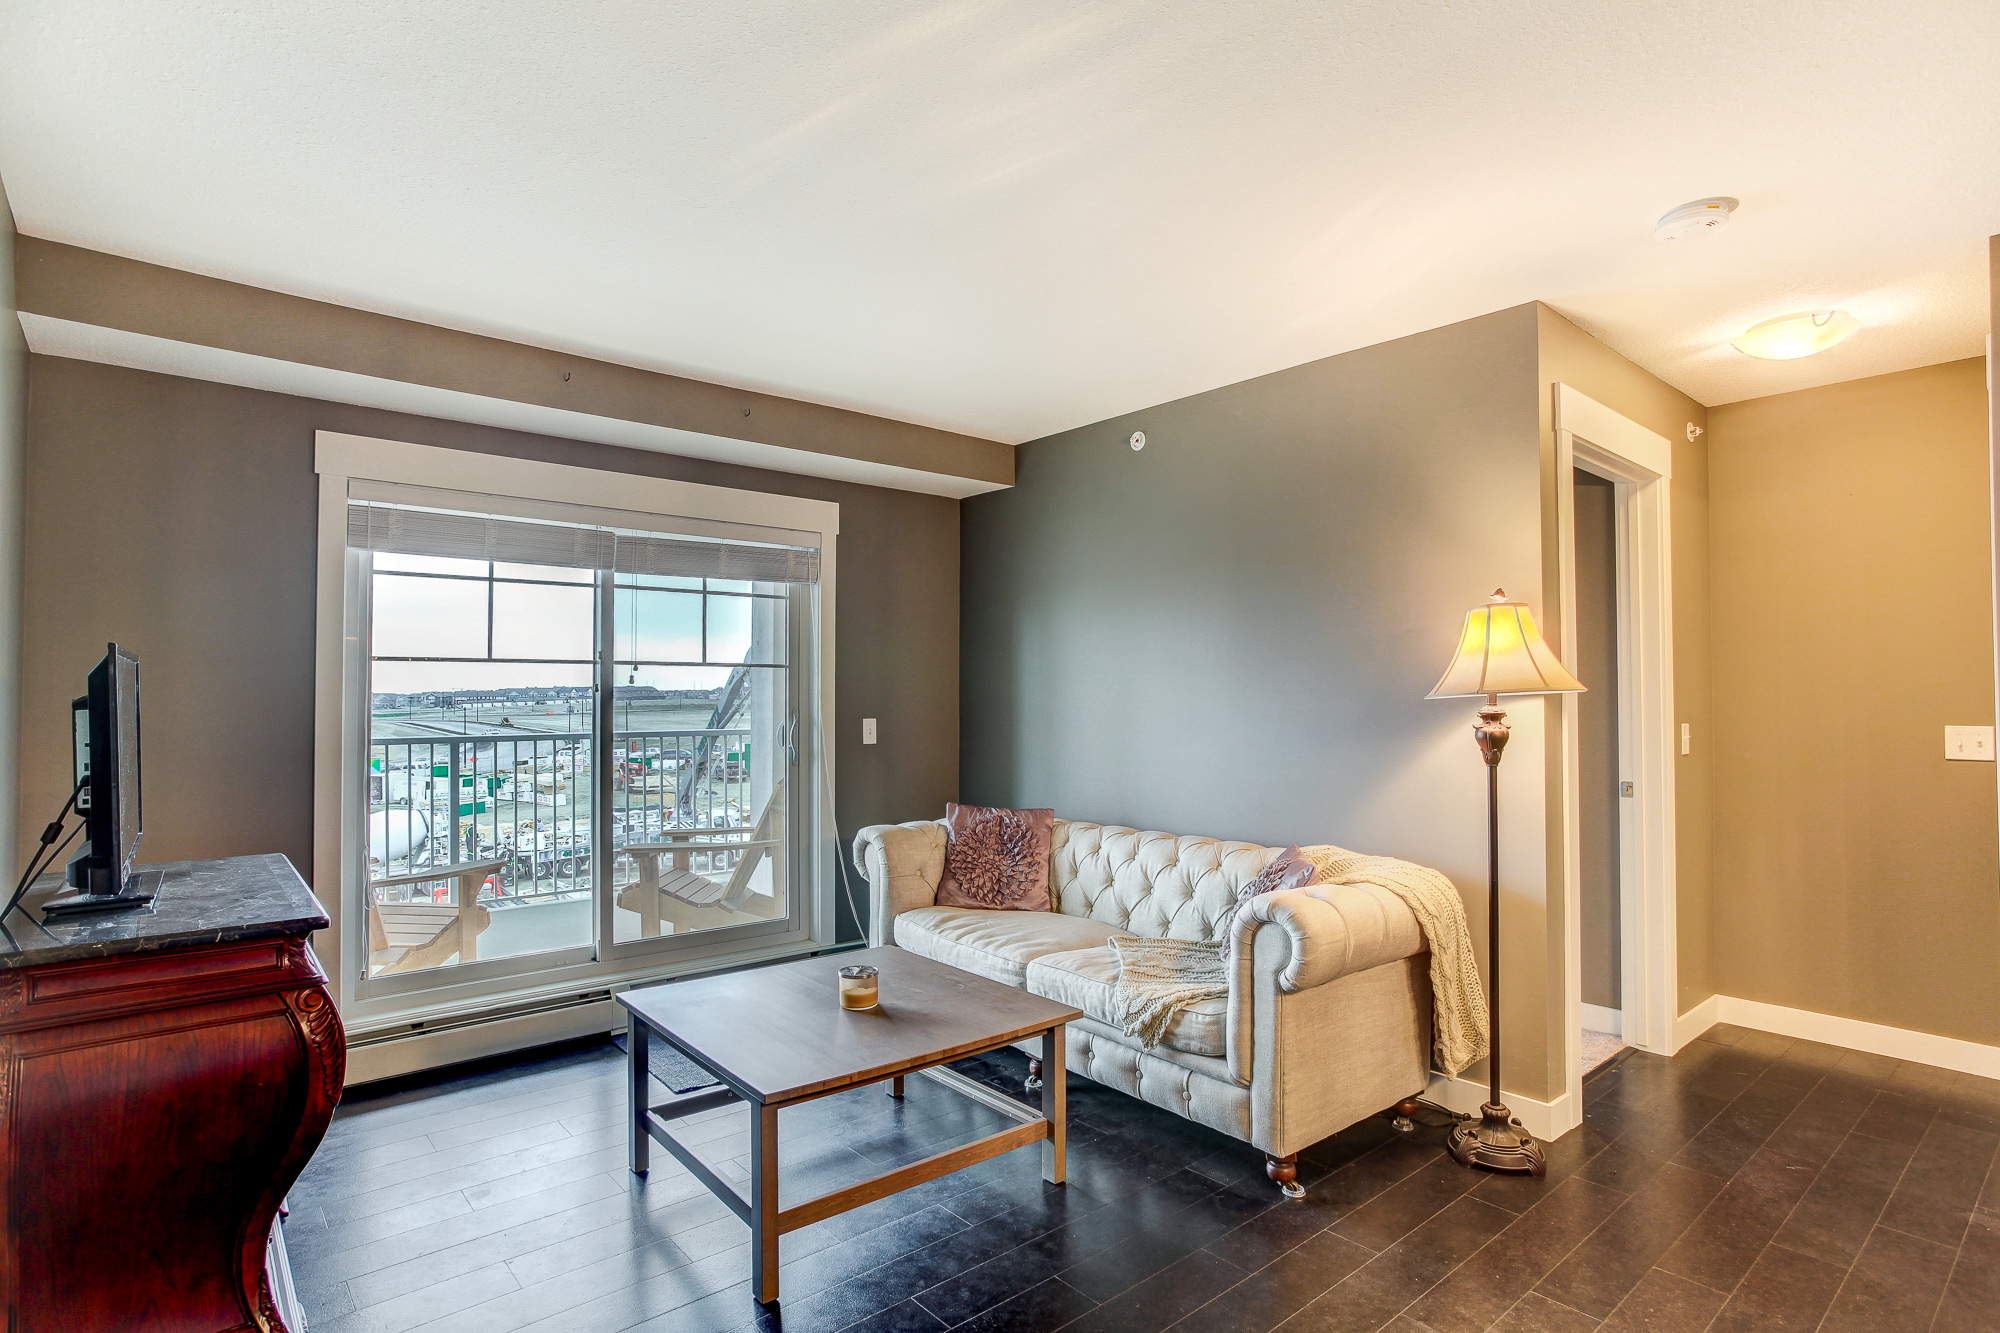 #2410, 11 Mahogany Row SE Rental